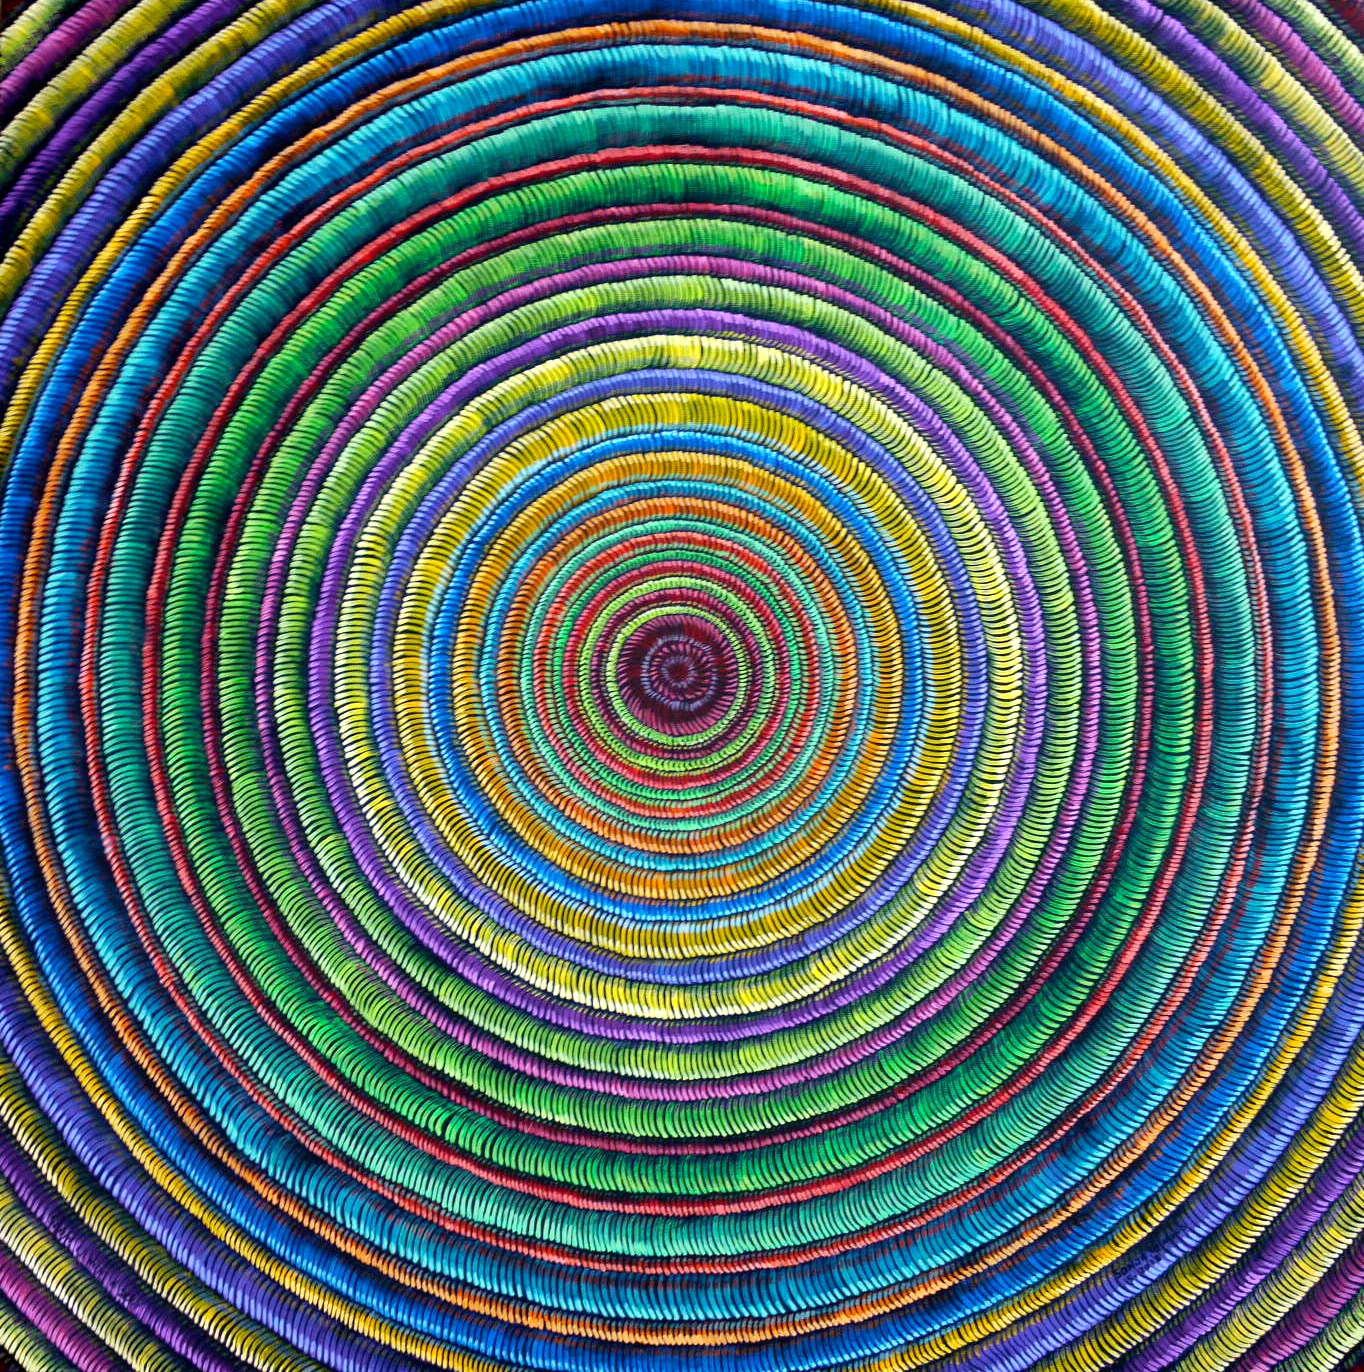 #472 - Fibrous Series (rainbow ripples) oil on canvas 24x24, 6/18 (6)